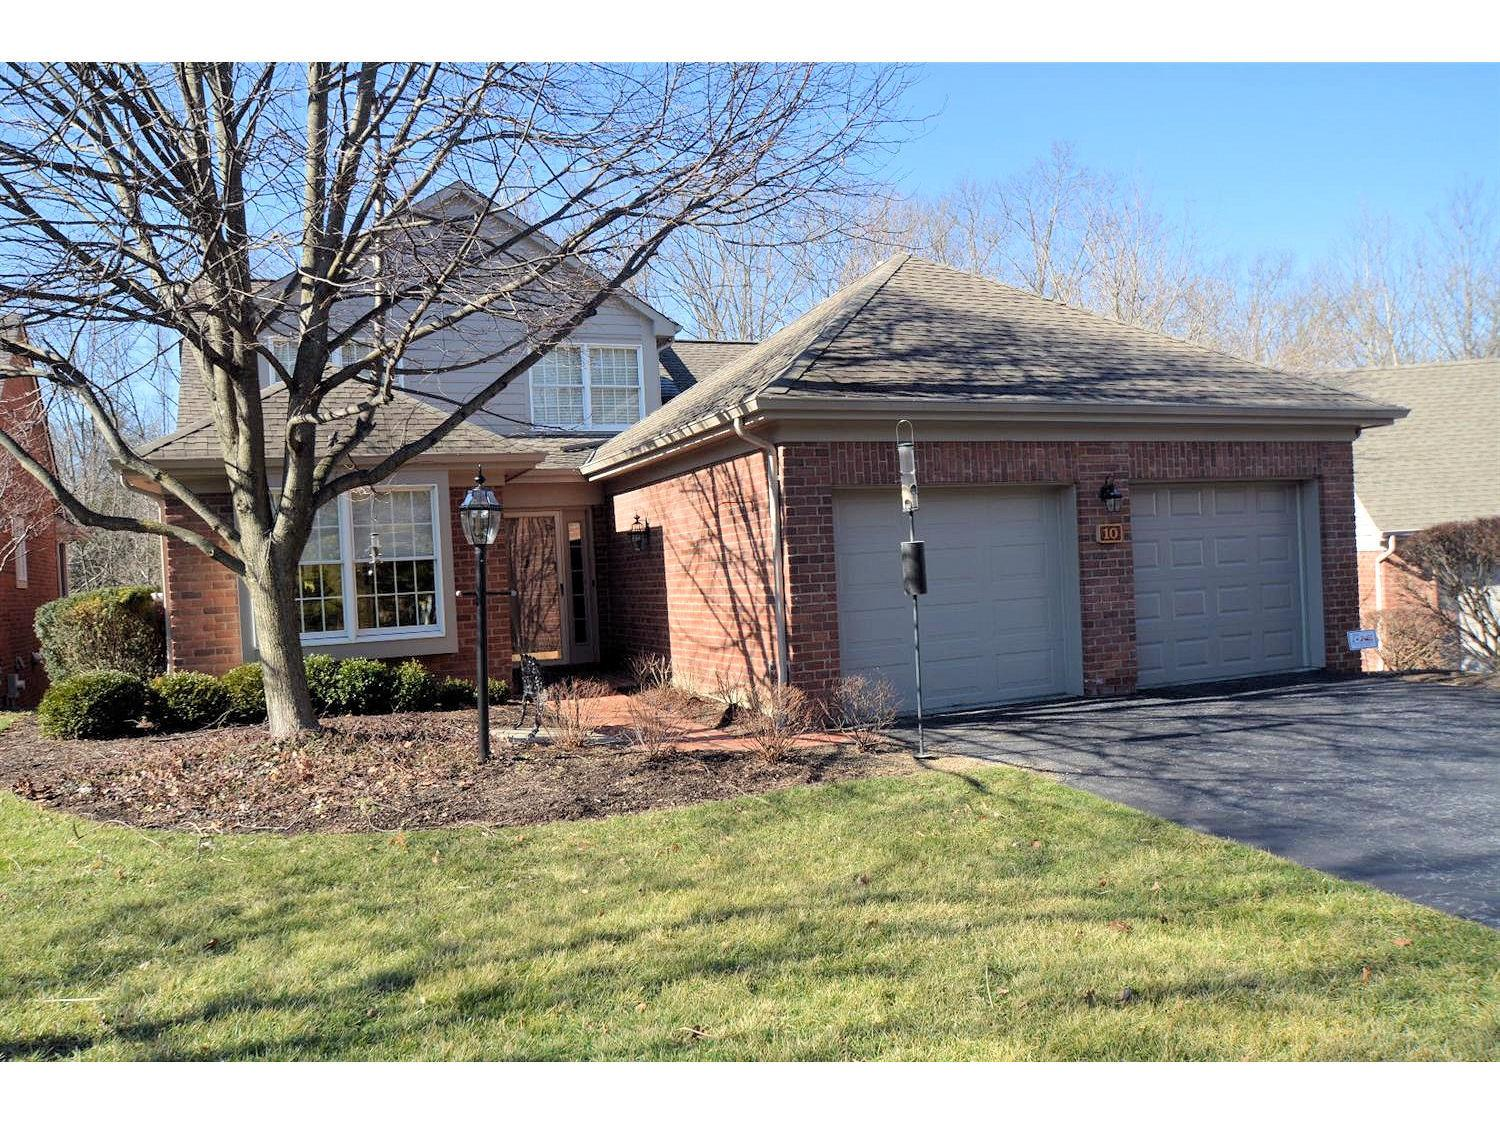 10 coventry ct montgomery oh 45140 listing details mls for Coventry federal plans